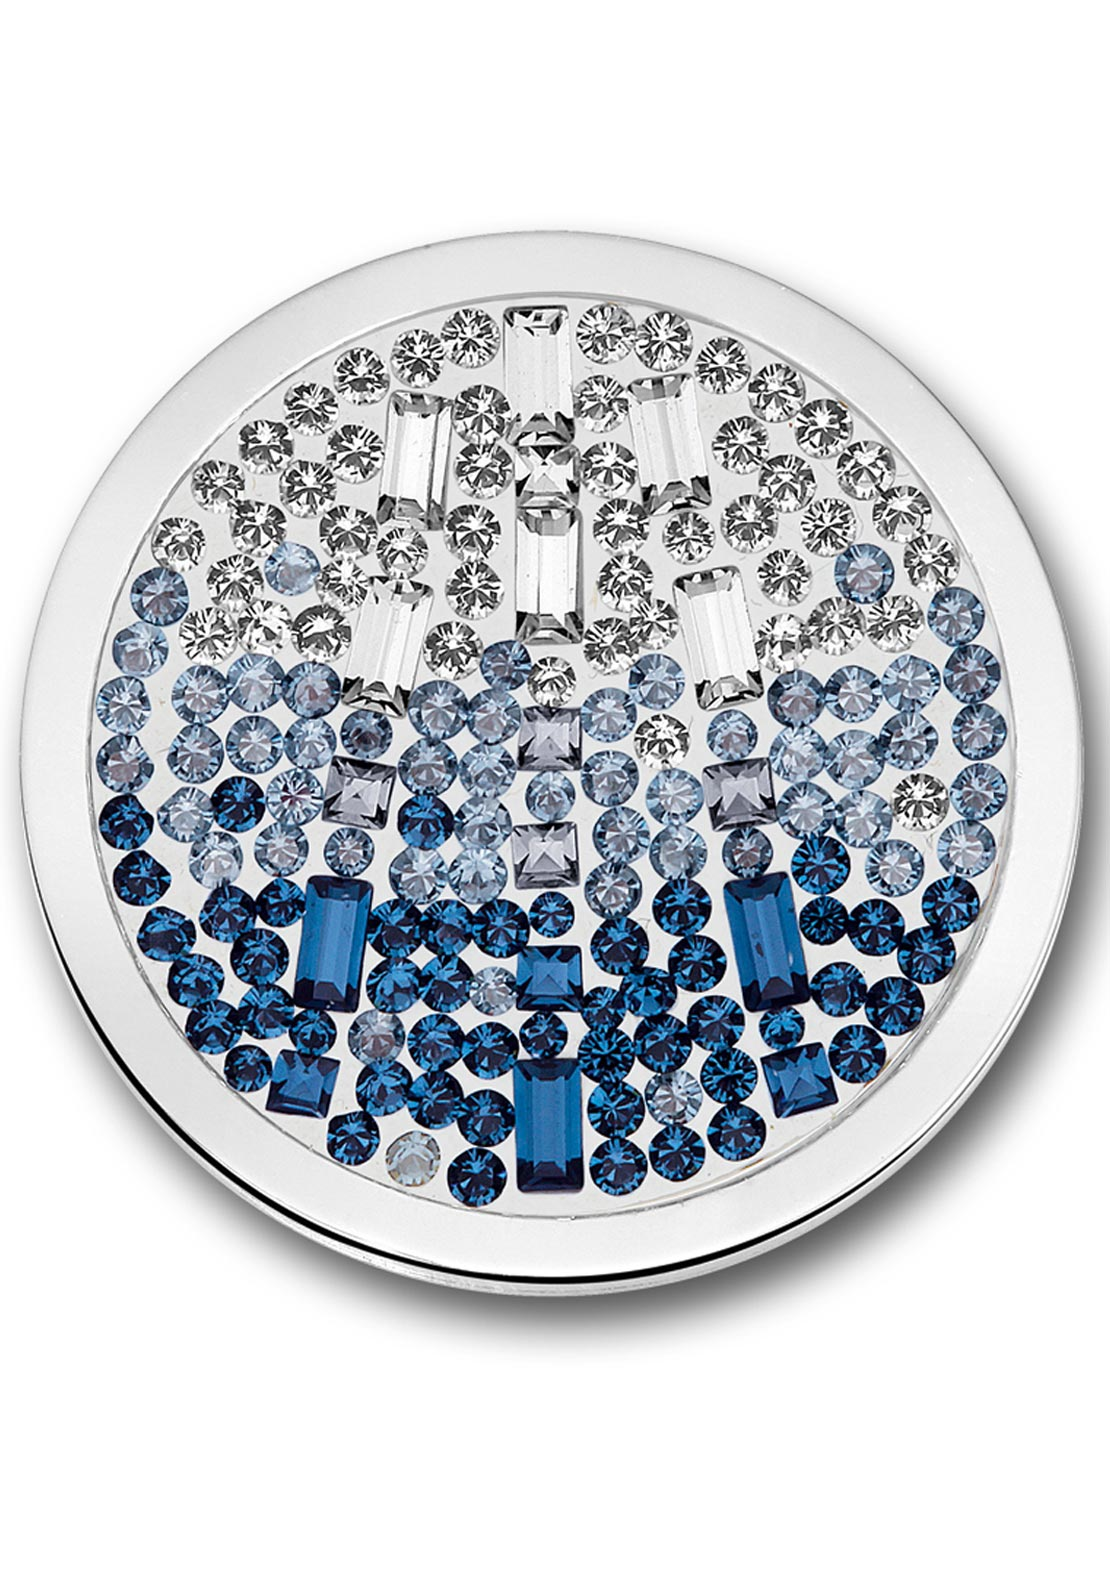 Mi Moneda Large Swarovski Cascada Moneda Coin, Pacific Blue